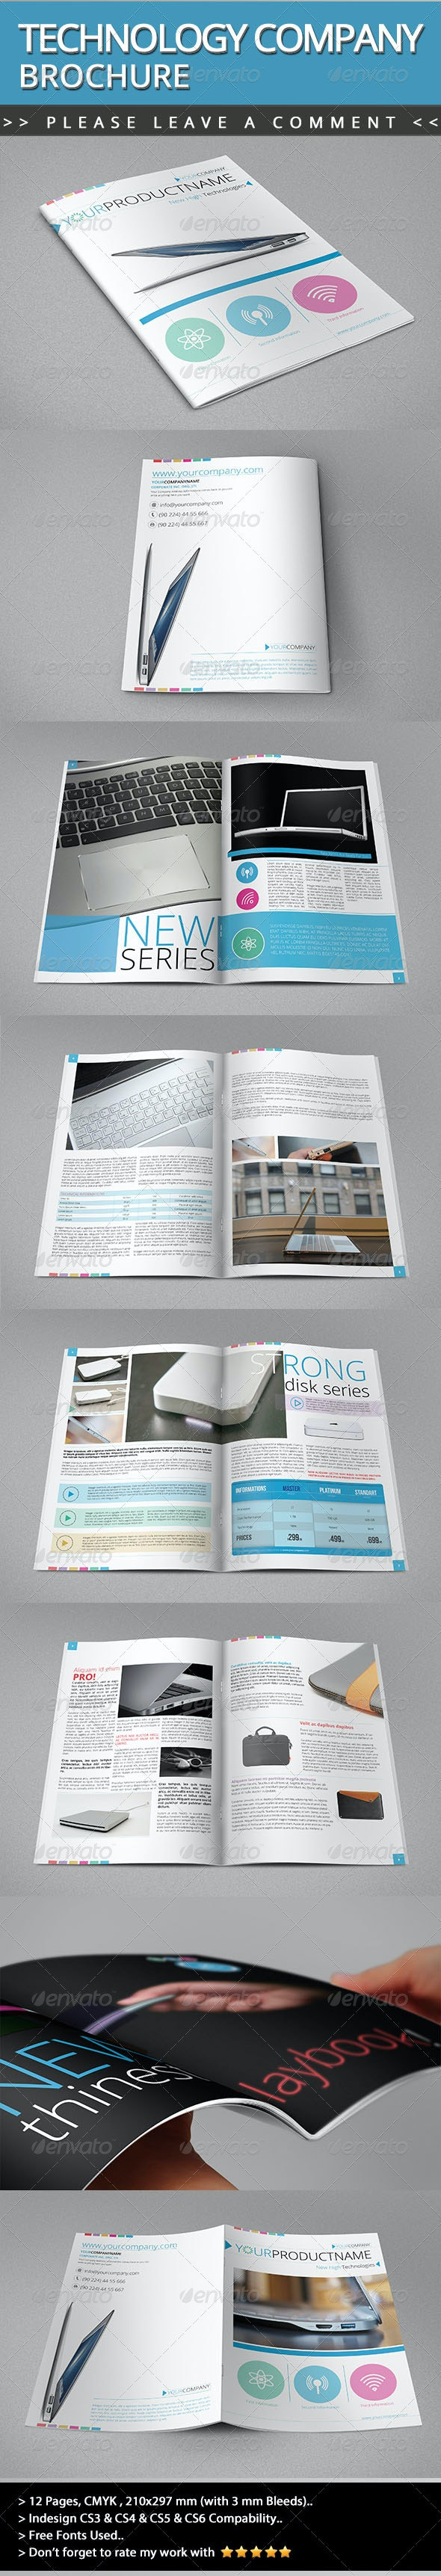 Technology Company Brochure V01 - Informational Brochures